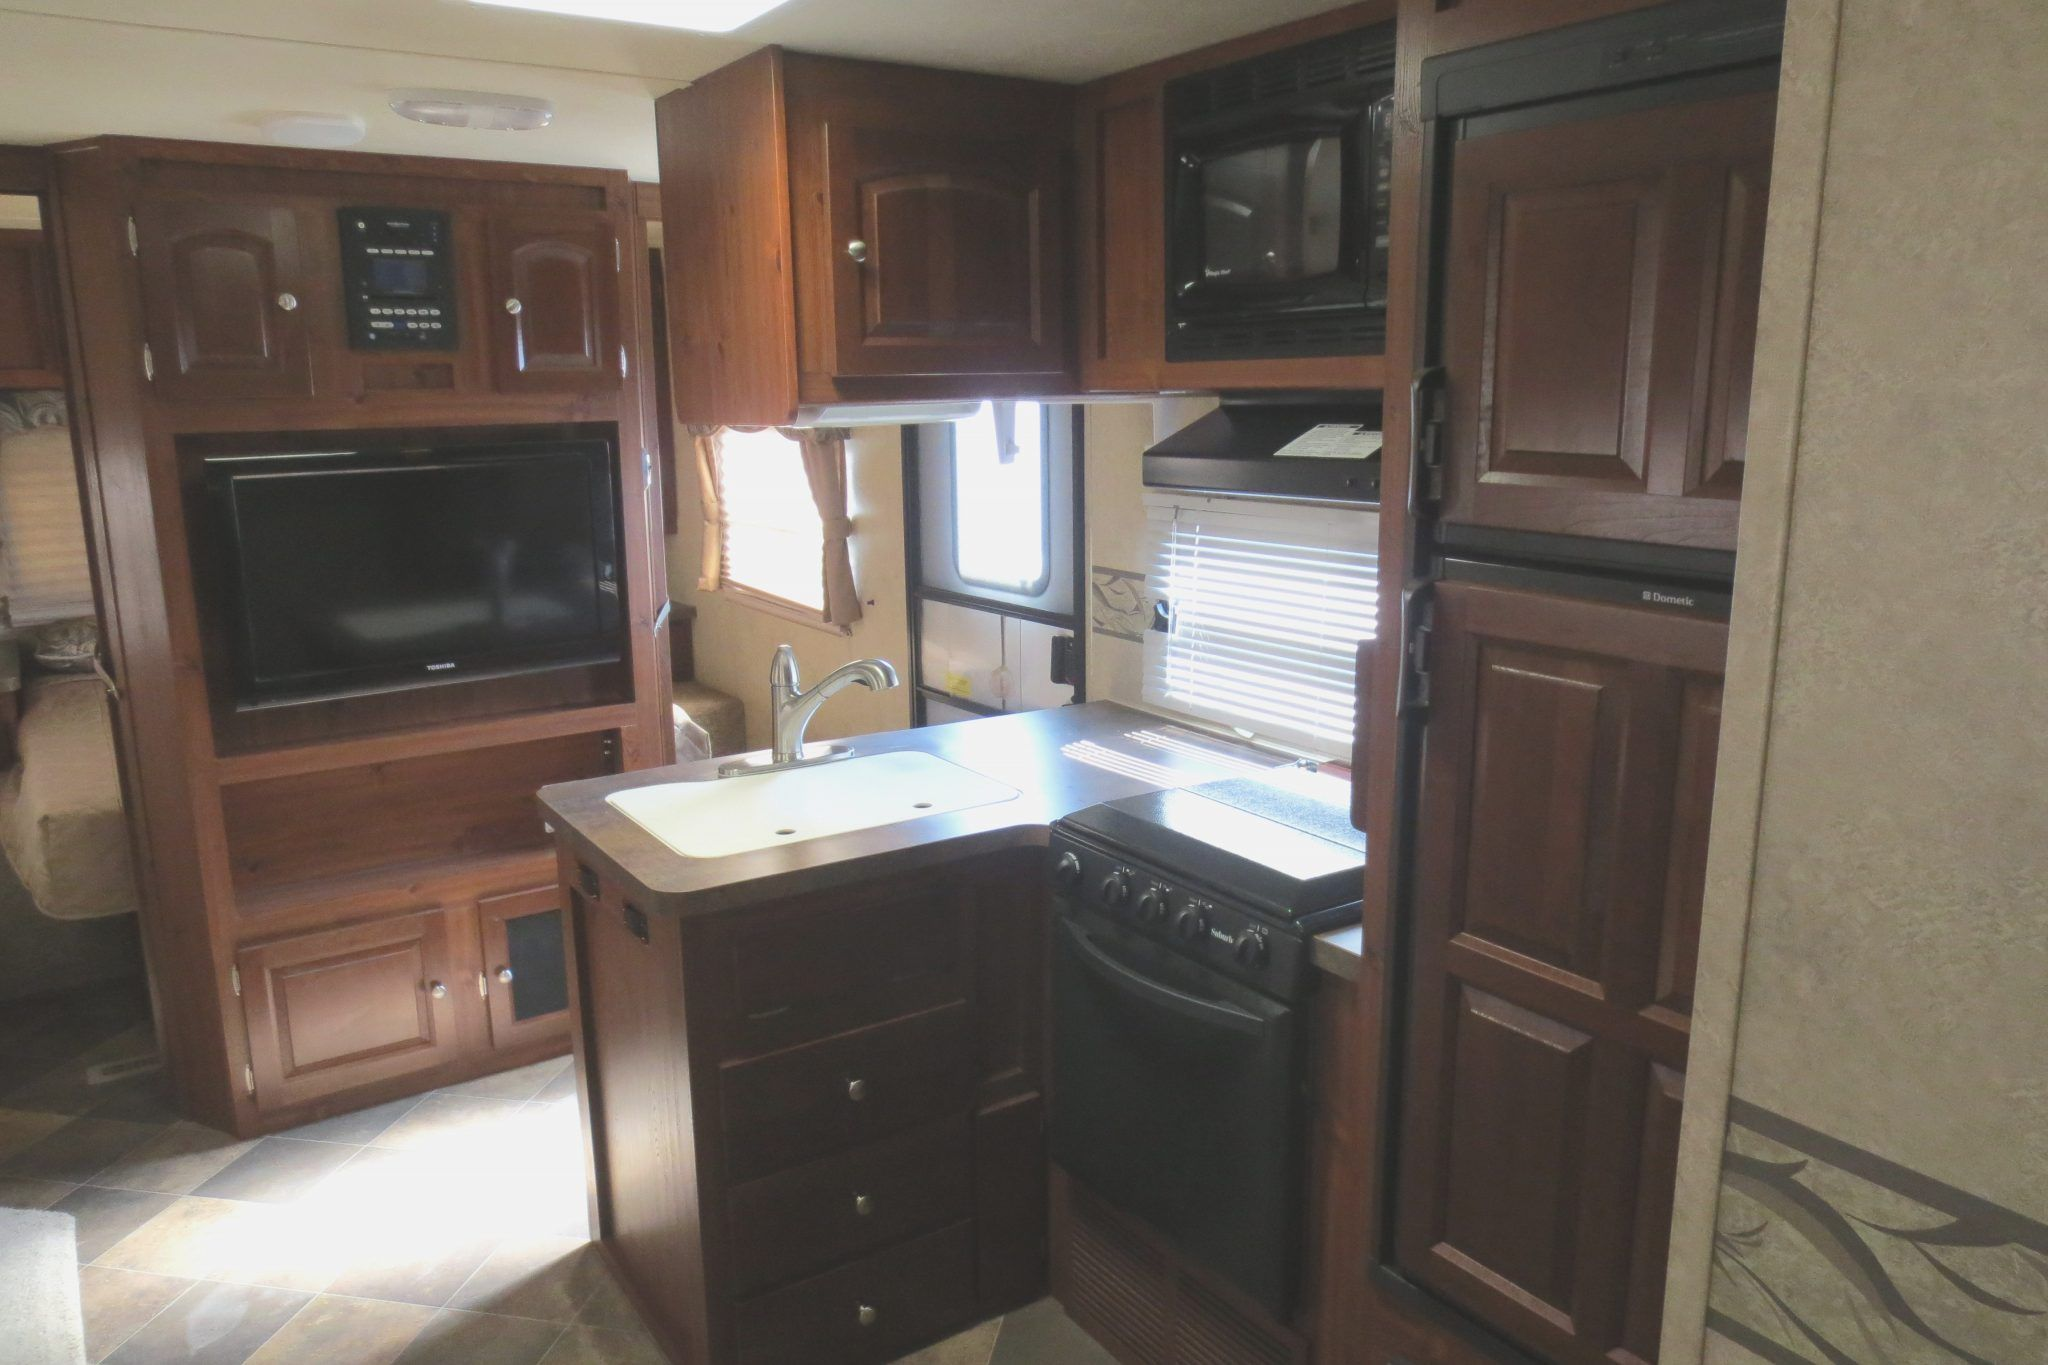 Travel Trailer With Outdoor Kitchen   22 Foot Travel Trailer With Outdoor  Kitchen, Keystone Travel Trailers With Outside Kitchens, Laredo Travel  Trailer ...